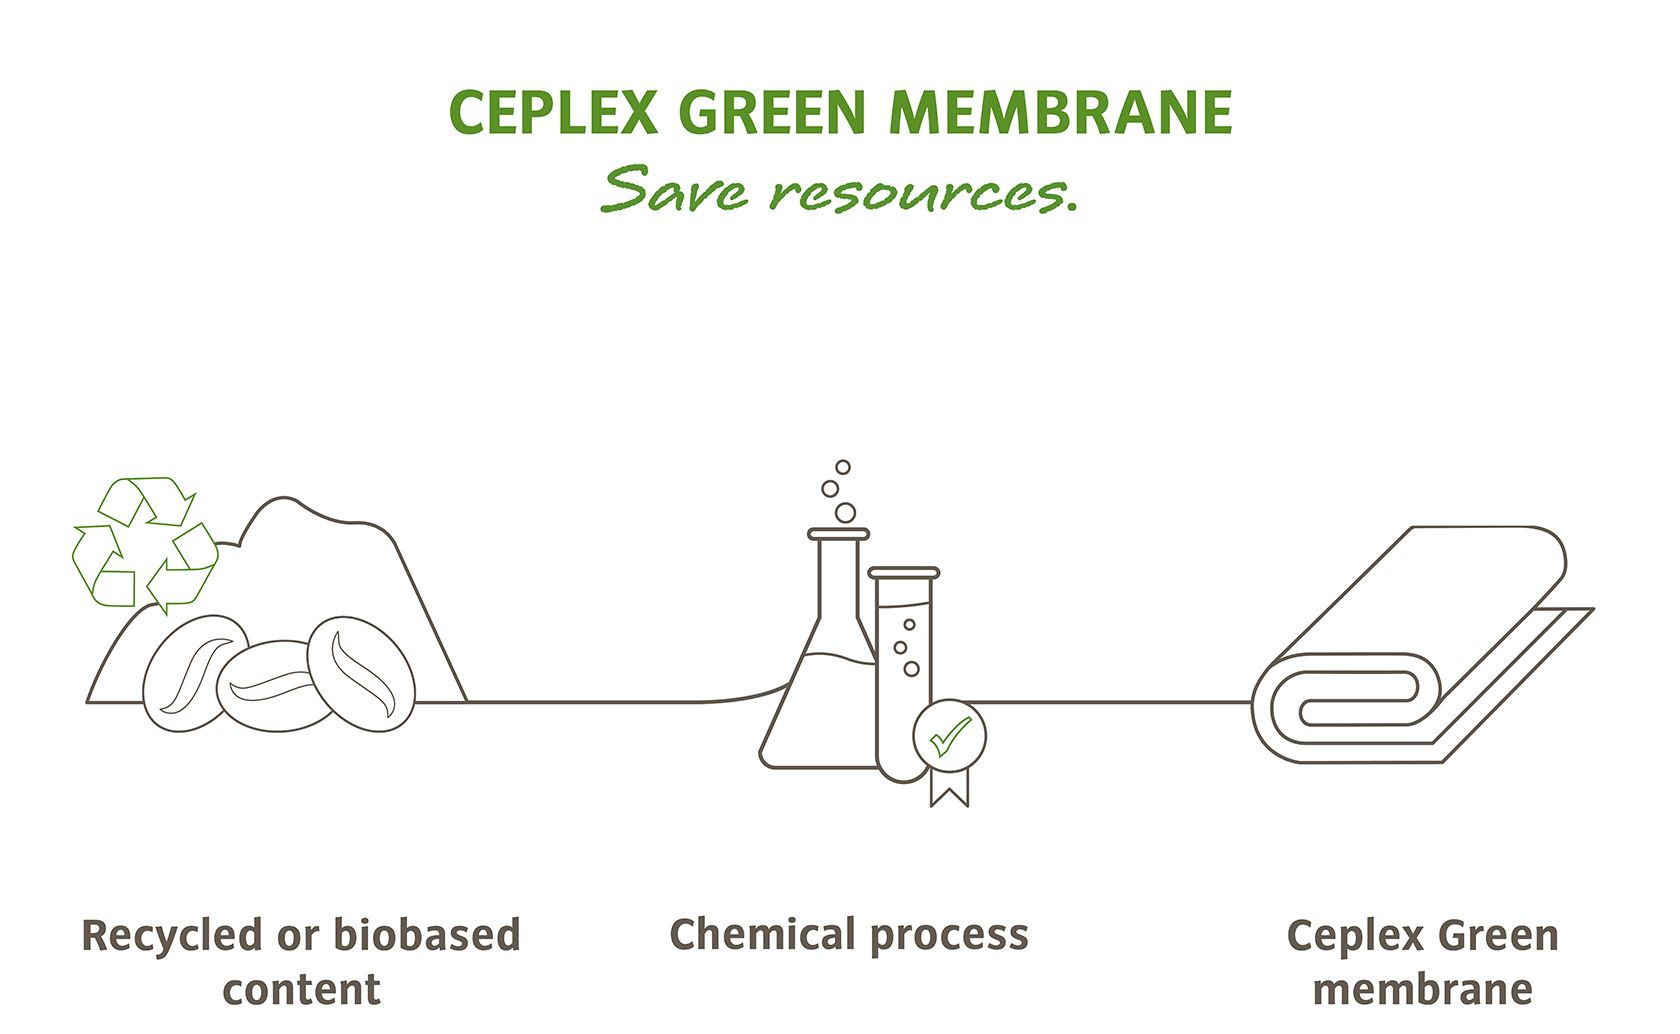 Ceplex Green